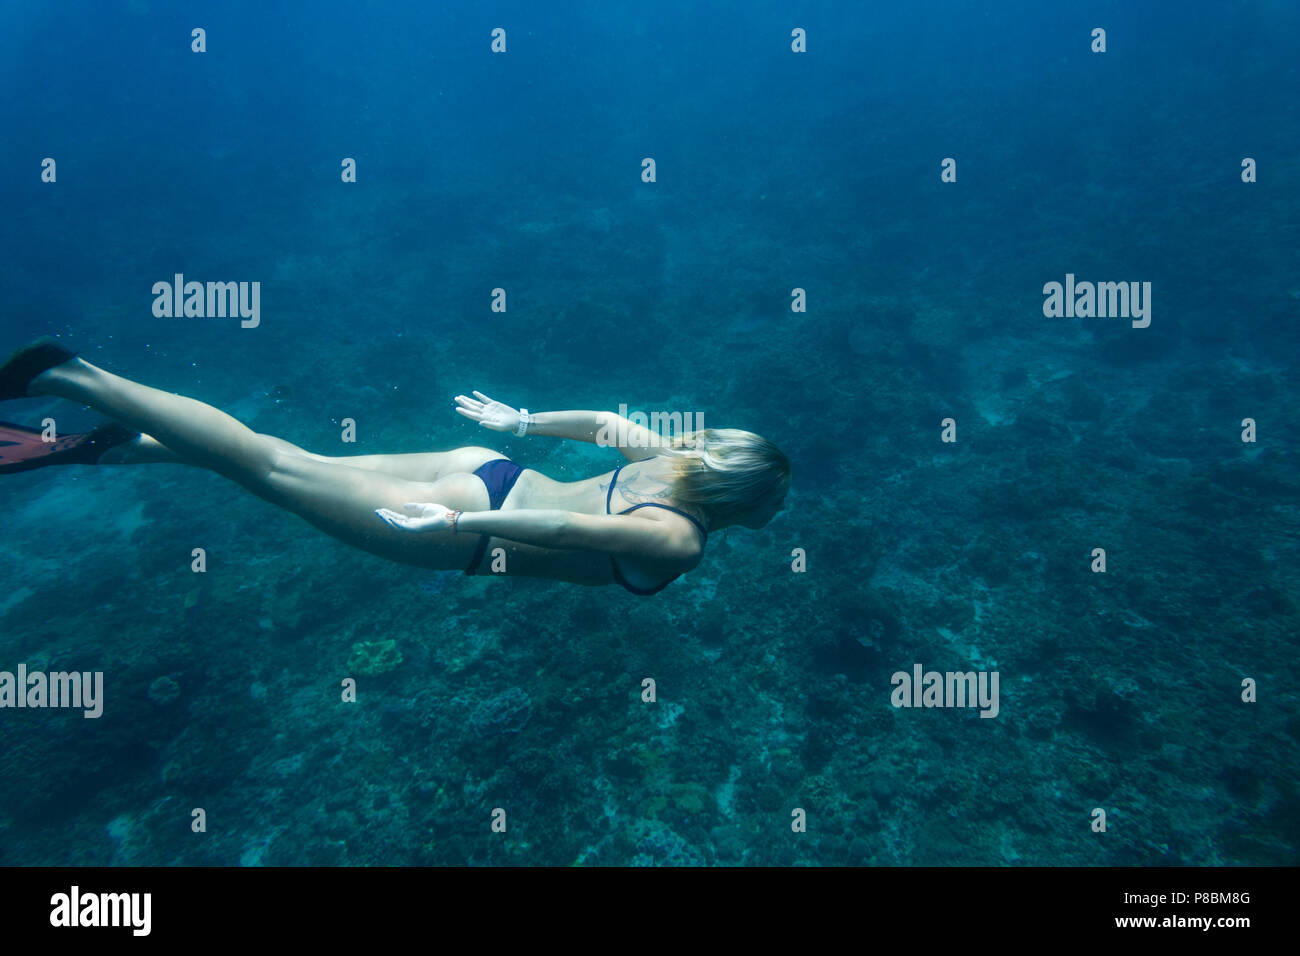 side view of woman in bikini and fins diving in ocean alone - Stock Image